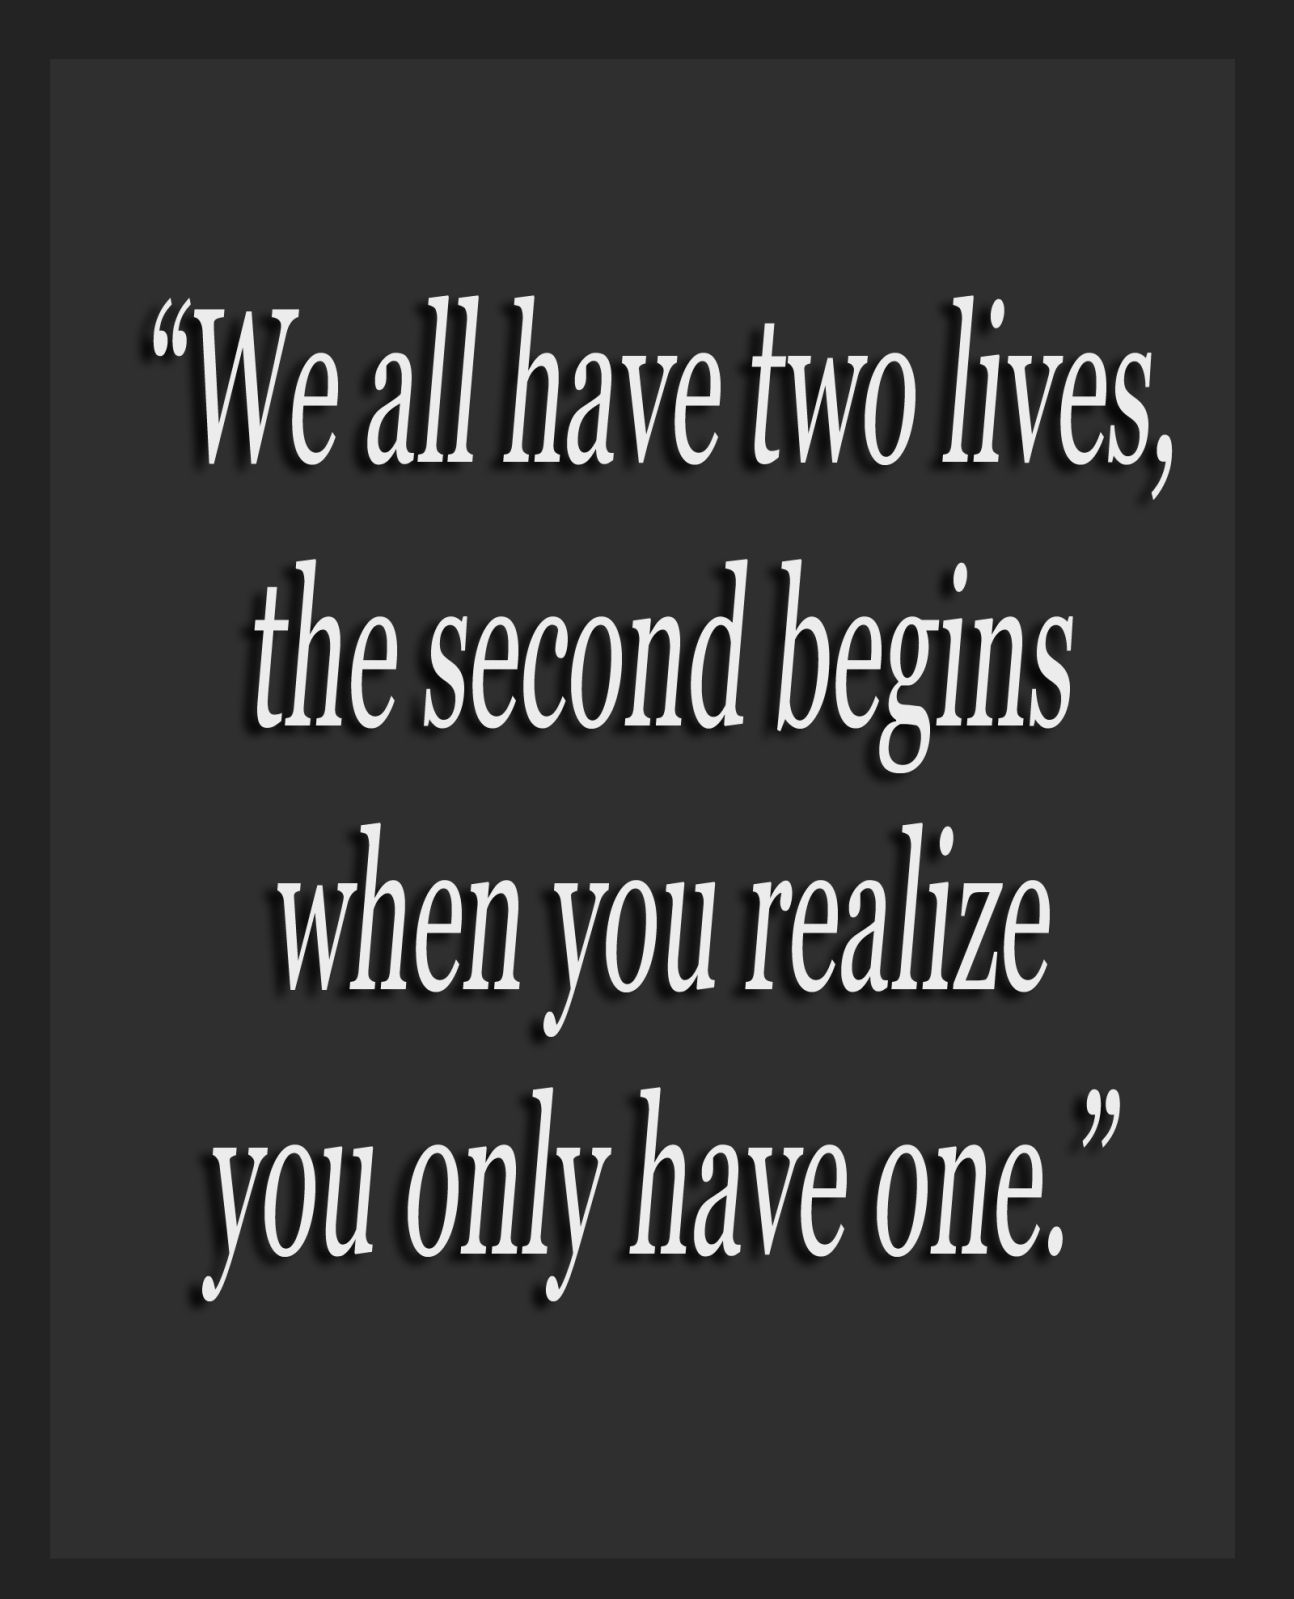 Christian Inspirational Quotes Life Changes: Best 25+ Life Change Quotes Ideas On Pinterest